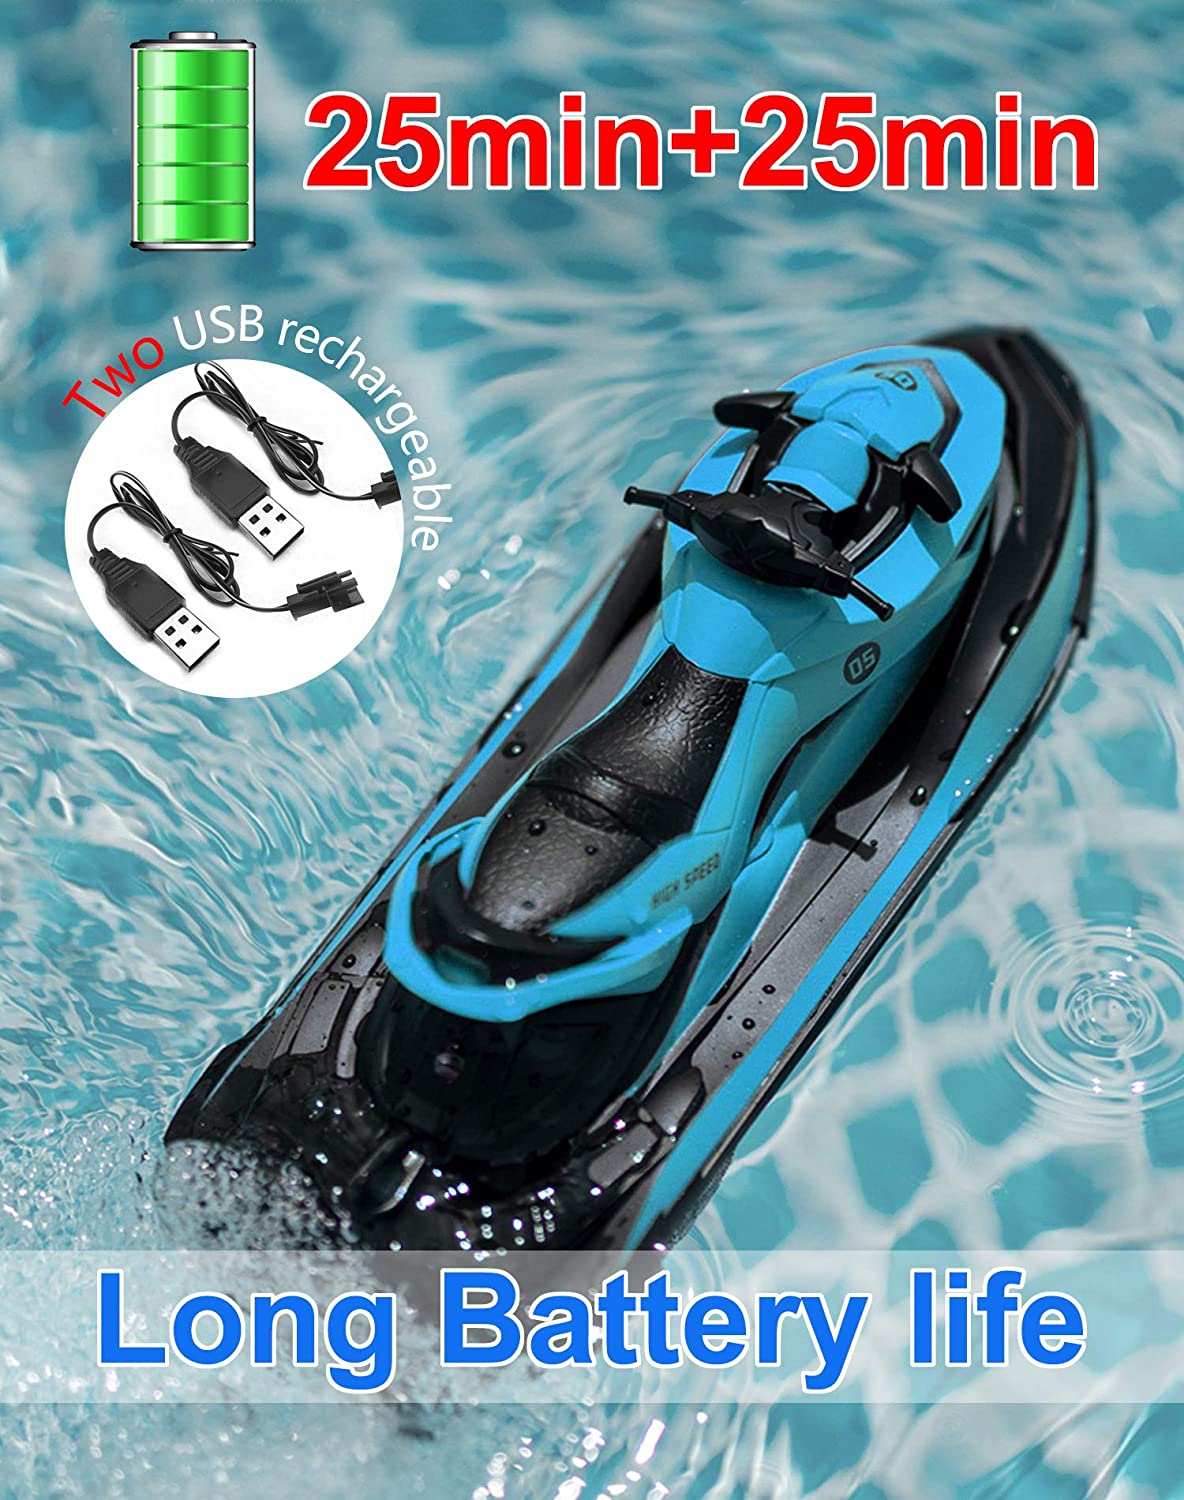 IOKUKI 2.4G RC Boat Blue Remote Control Boat for Kids and Adults for Lakes and Pools with 2 Batteries /& 2 Charger Cables /& Low Battery Prompt Motor Boat